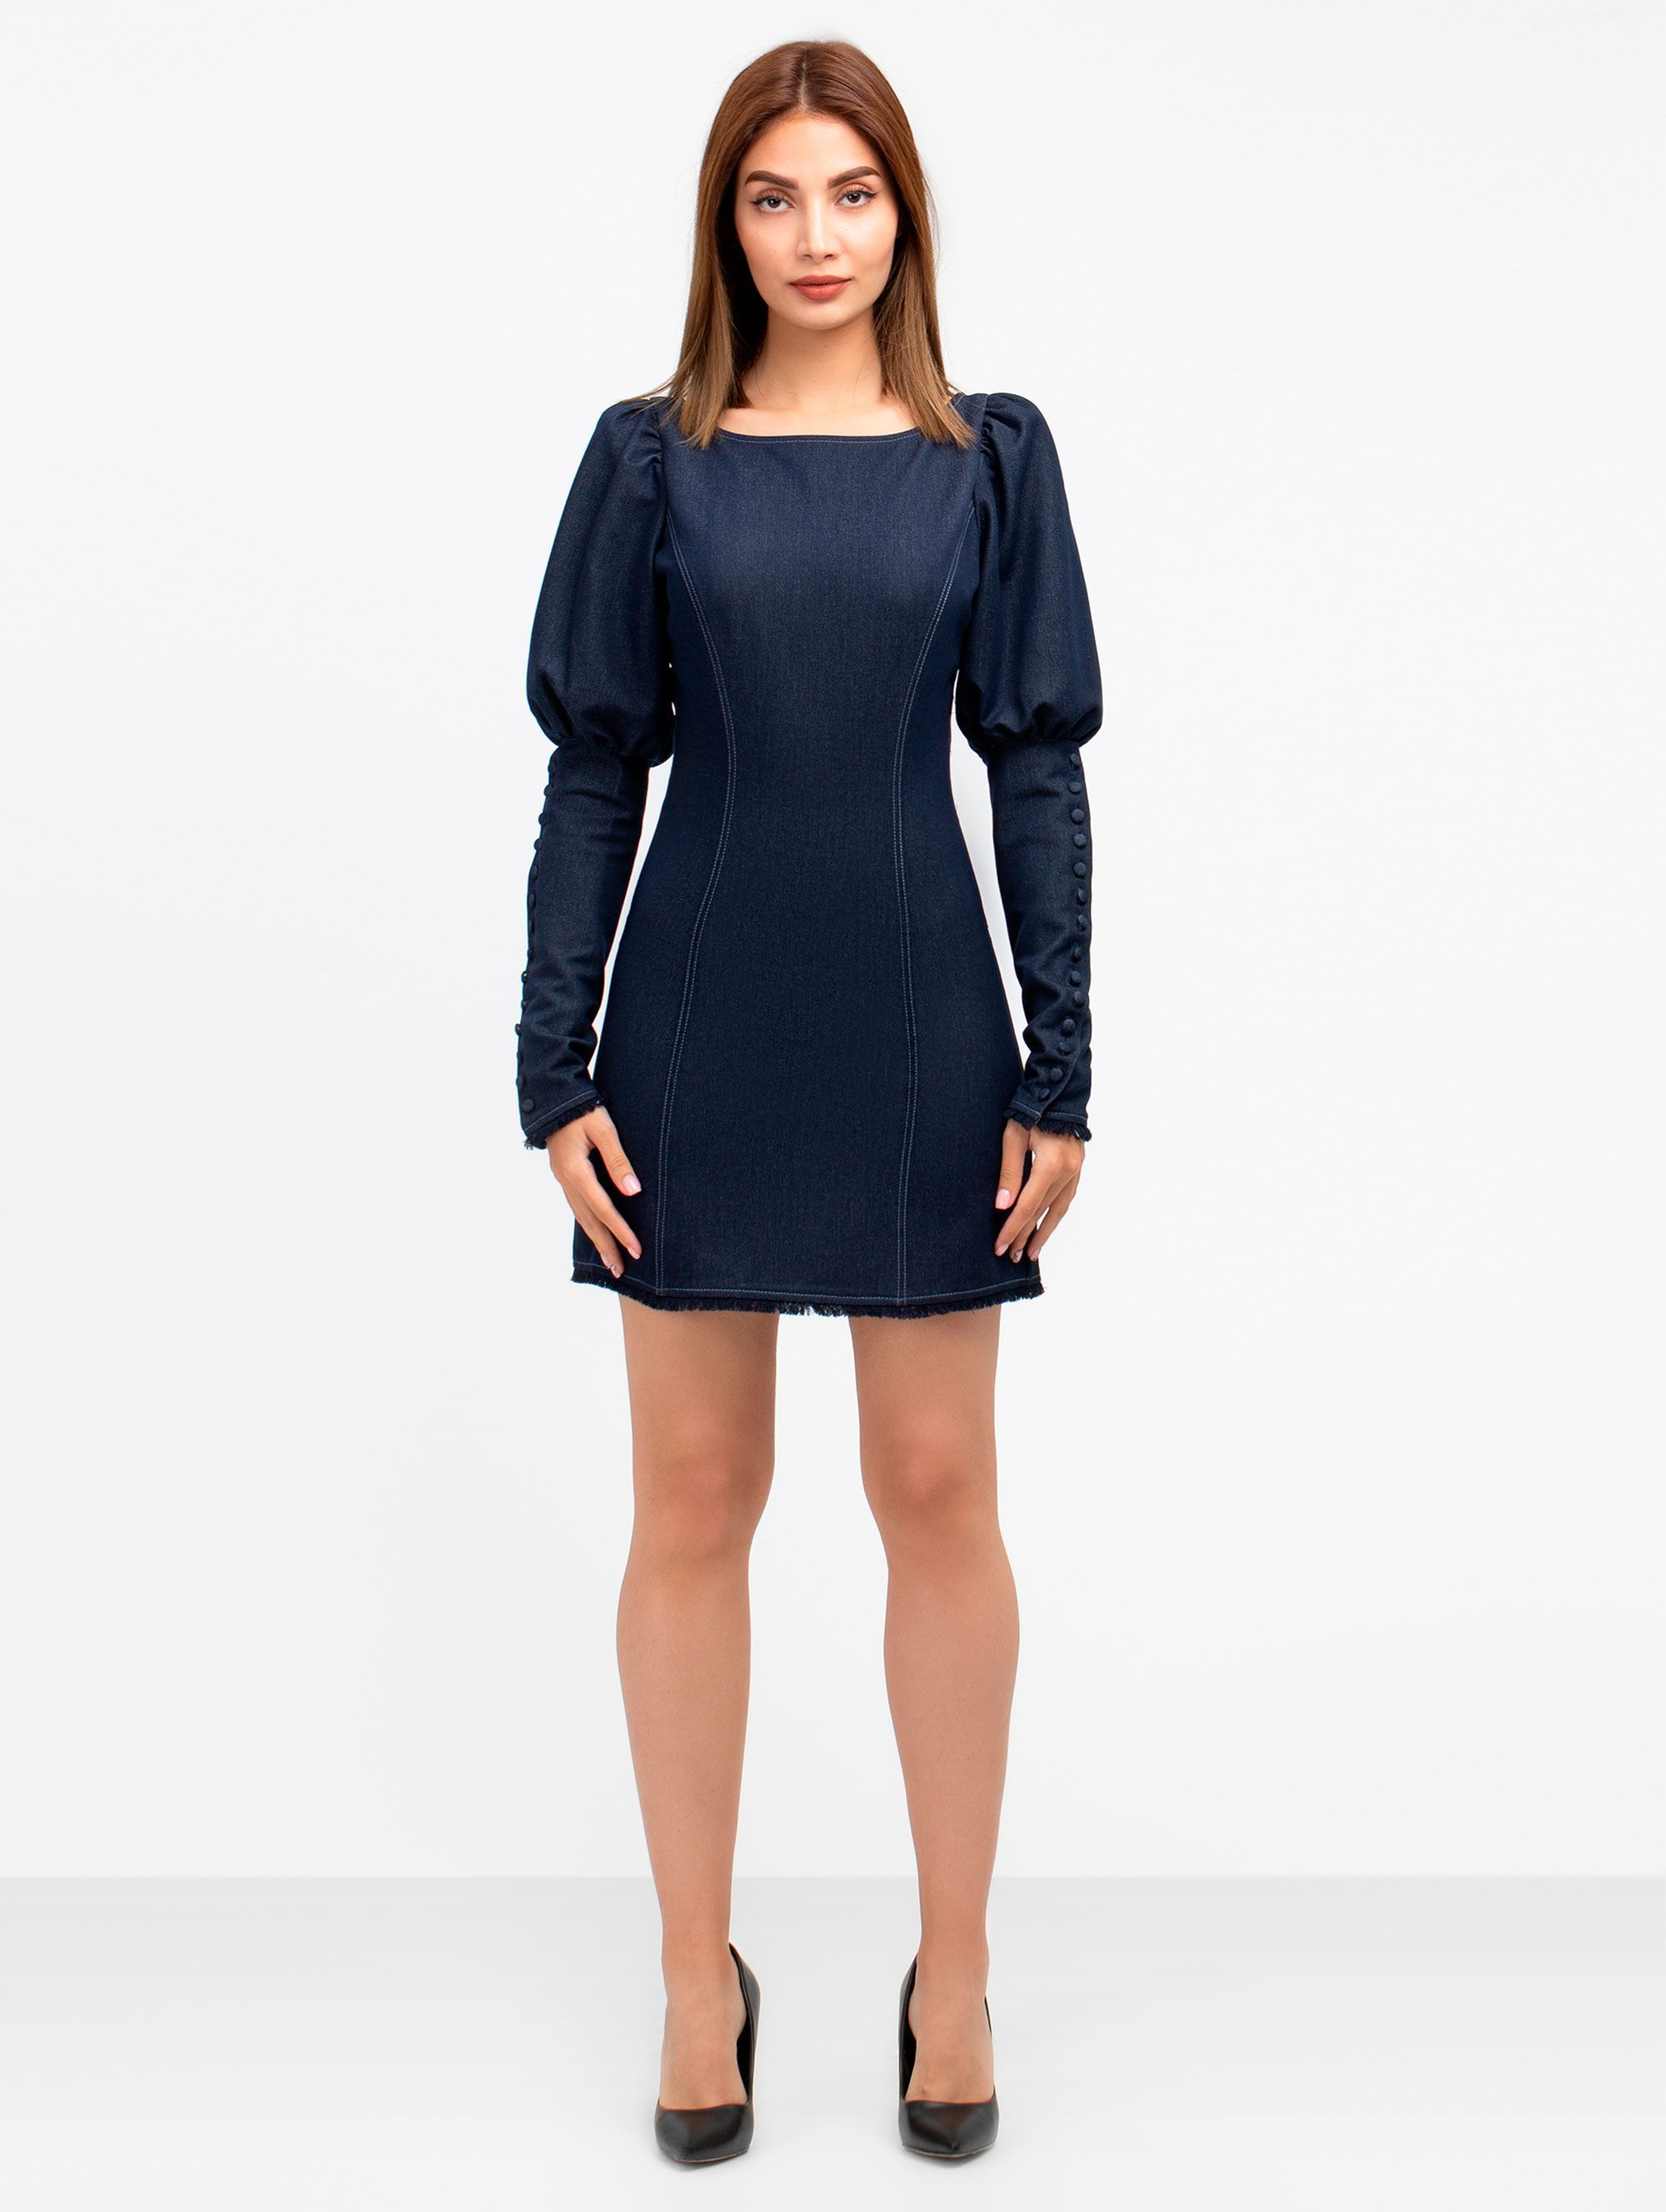 Misha Collection Paige Denim Dress